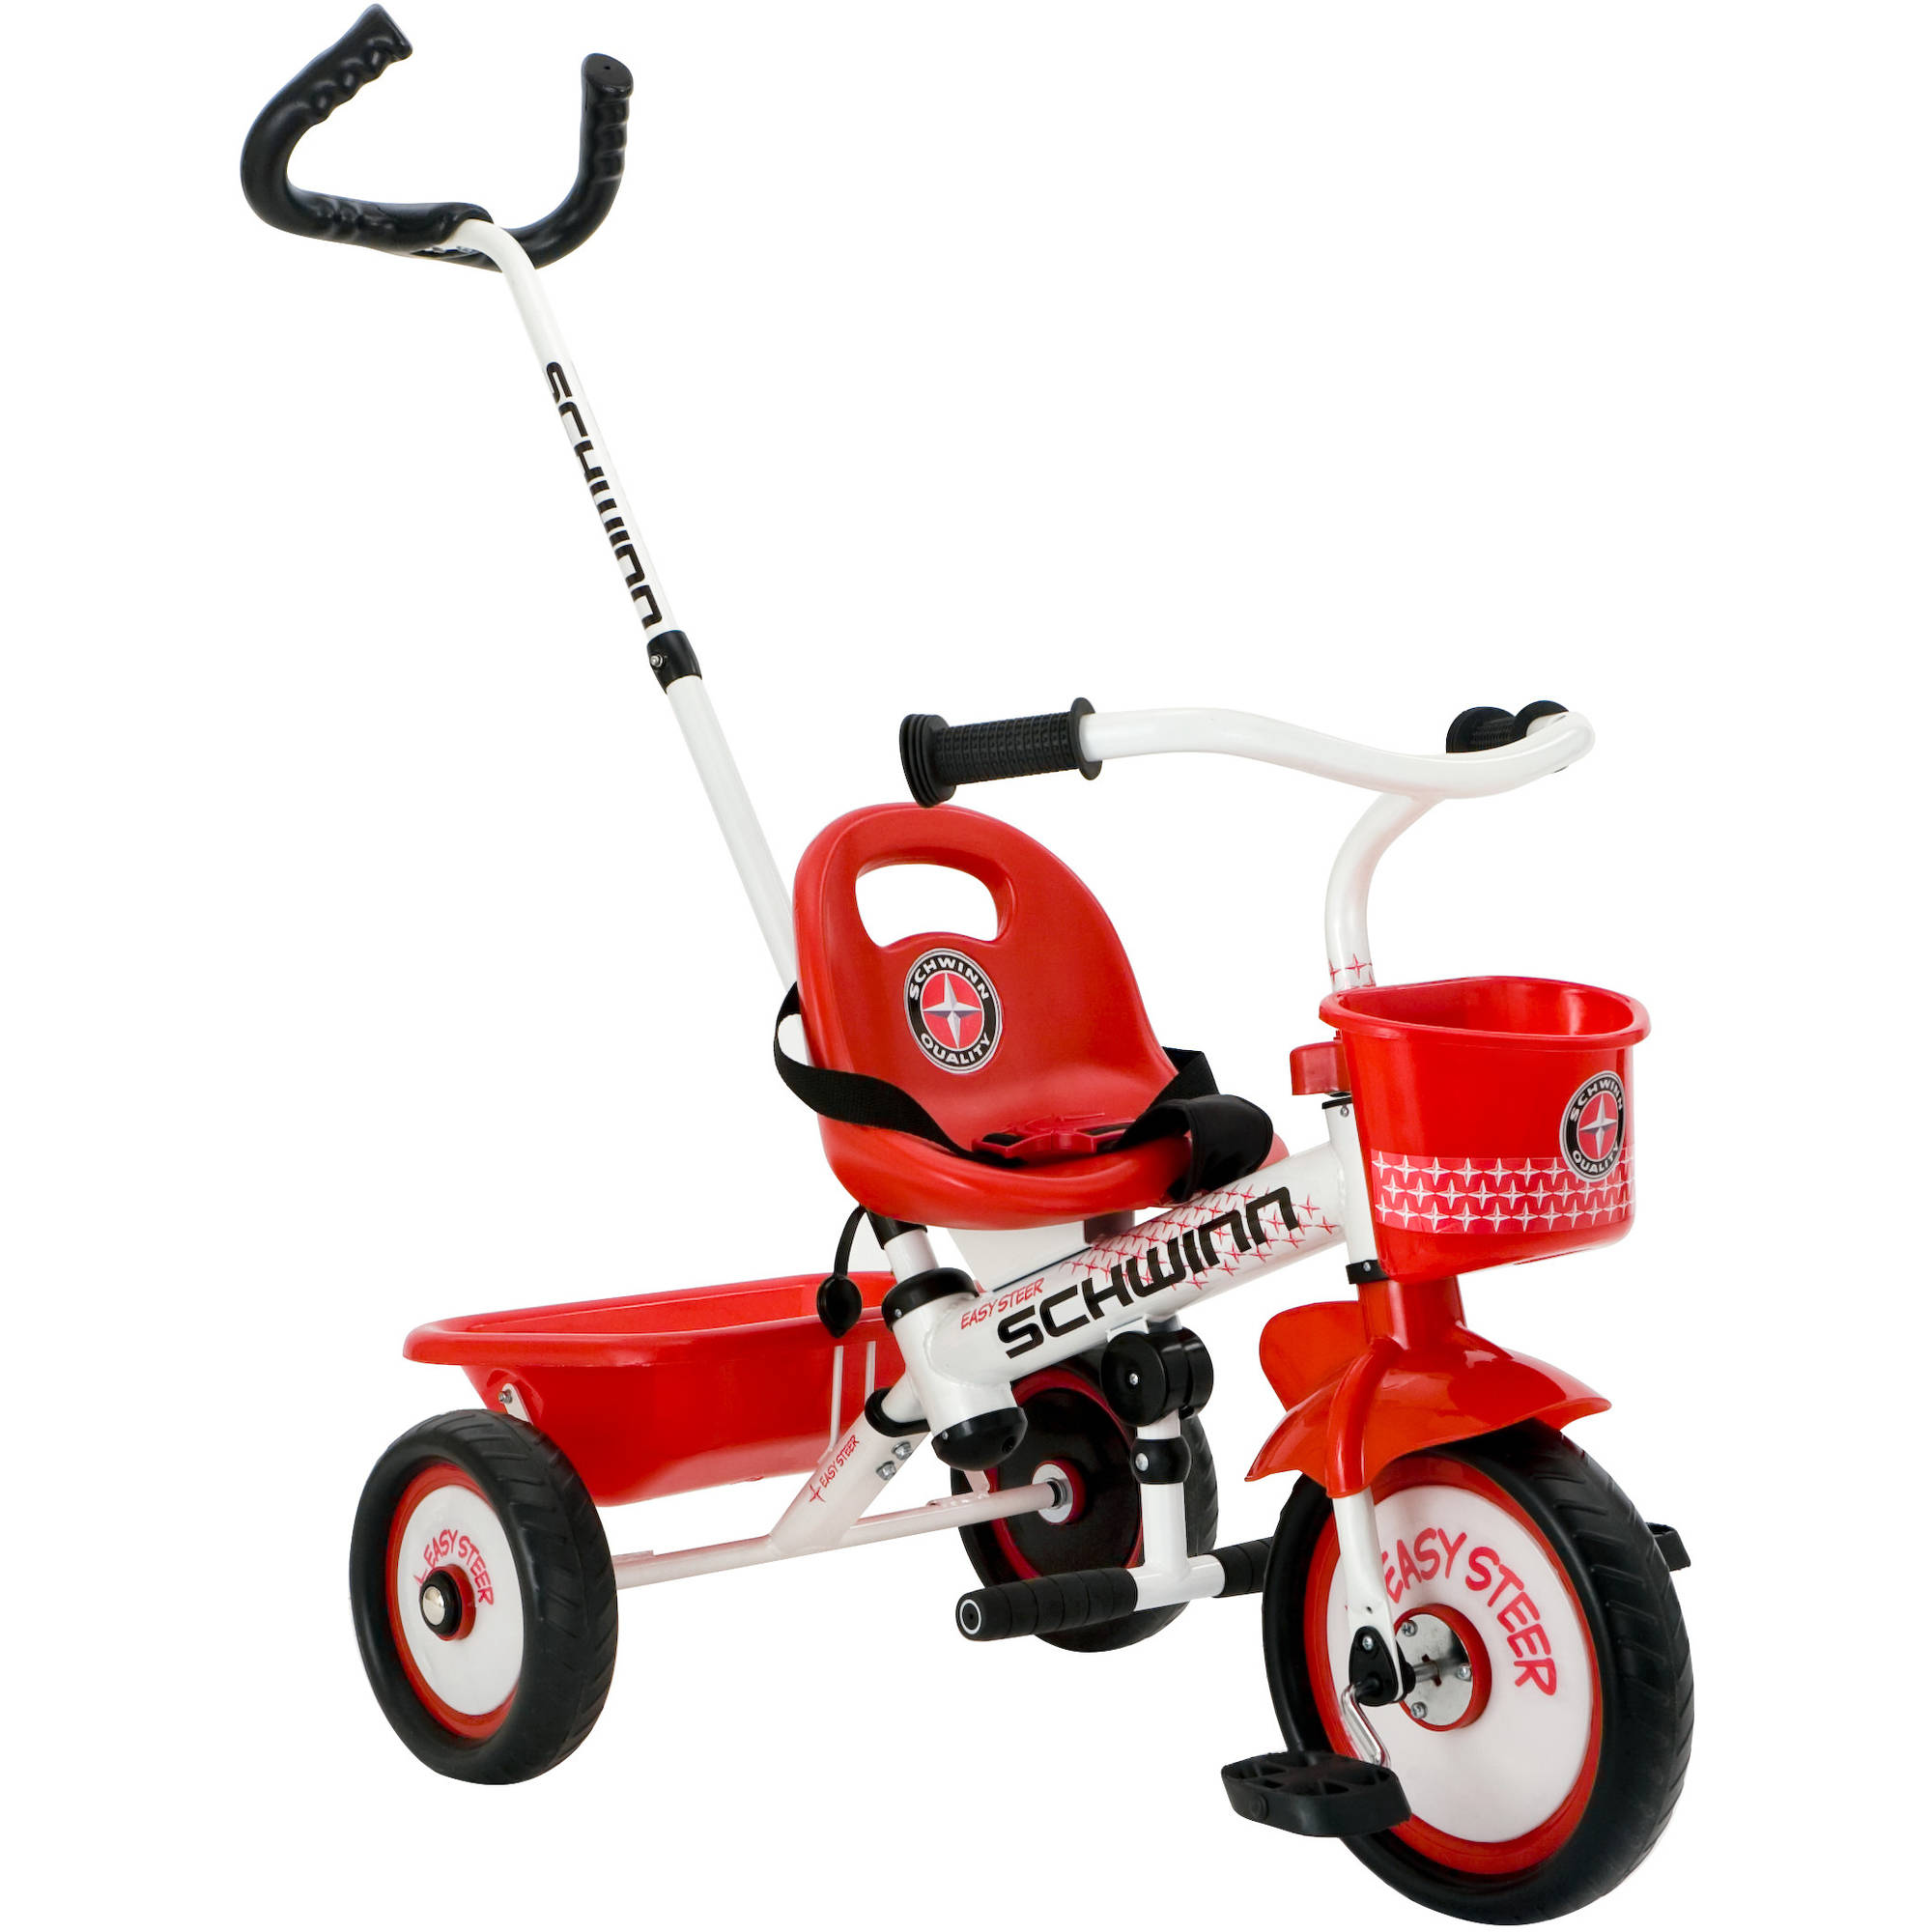 Schwinn Easy-Steer Trike